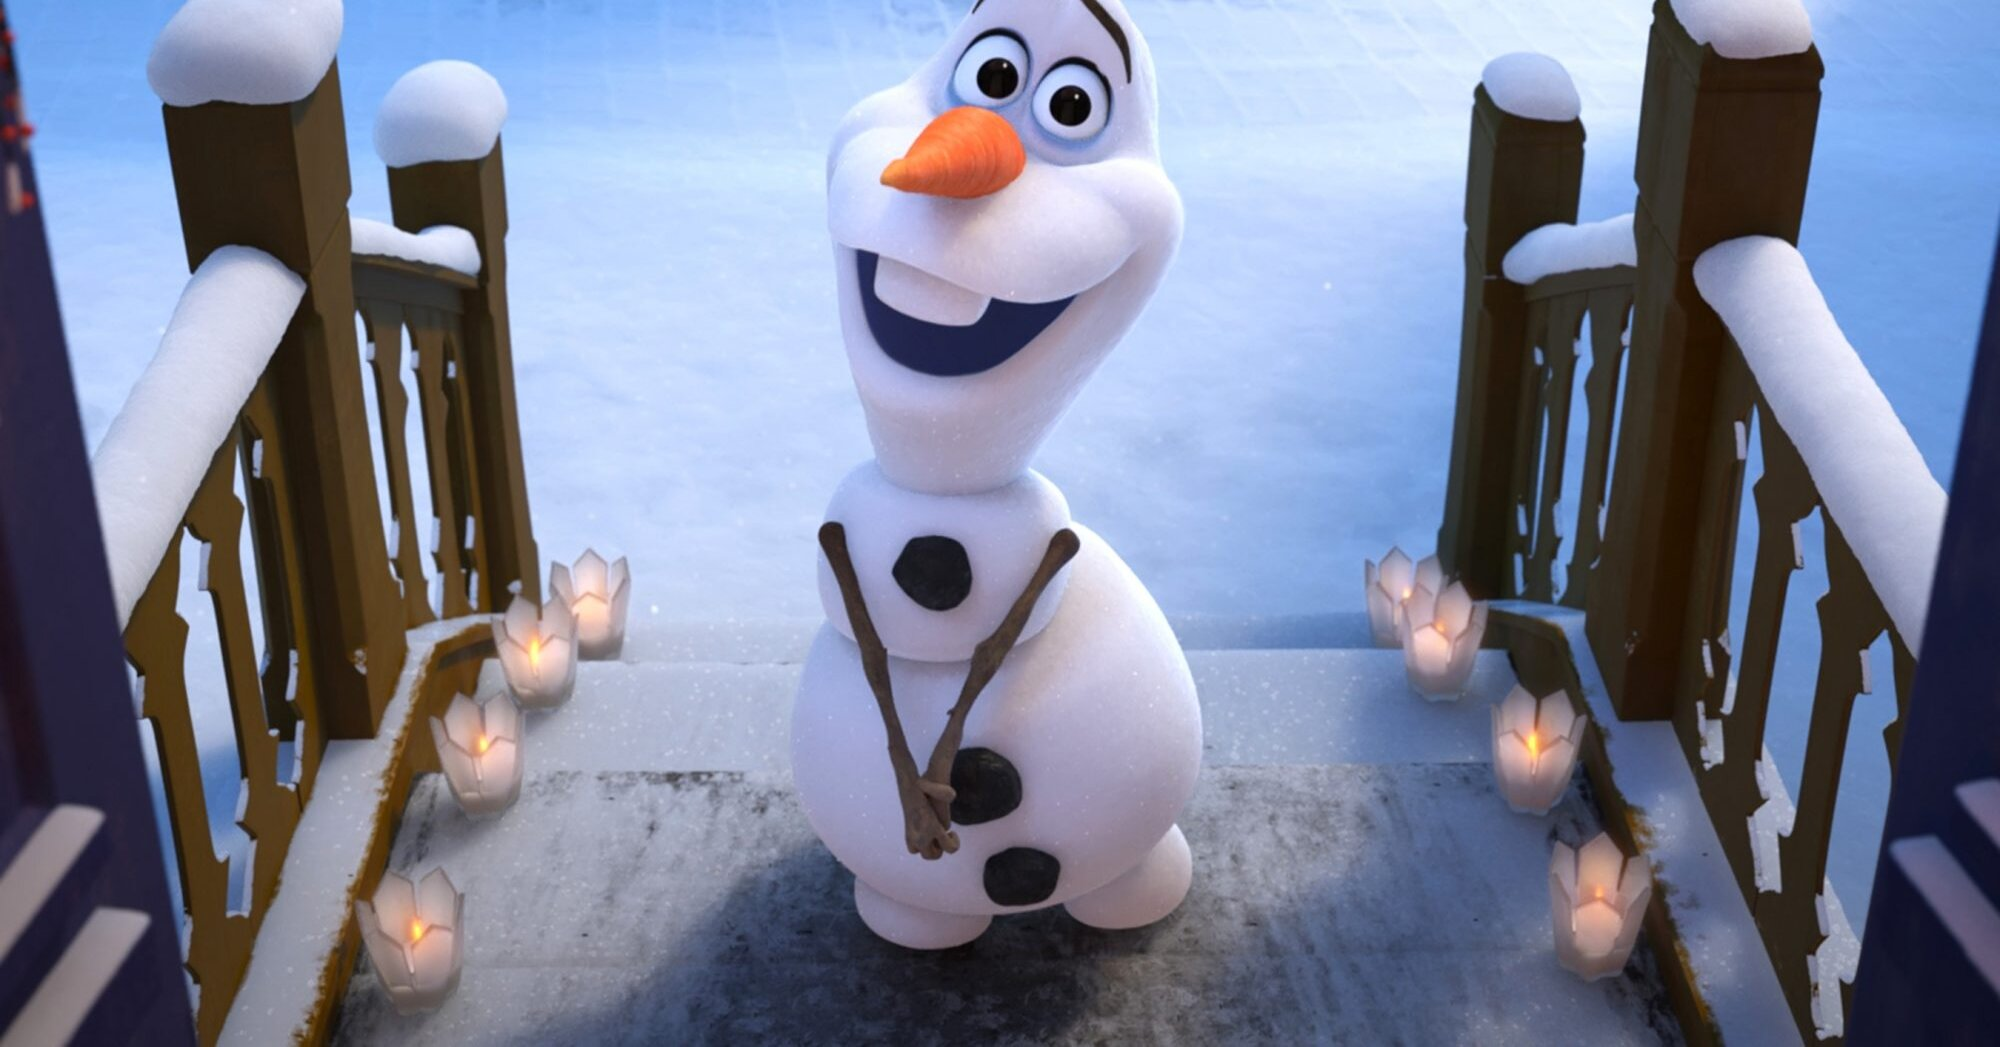 Disney Releasing New Frozen Short Series at Home With Olaf, Made Entirely at Home